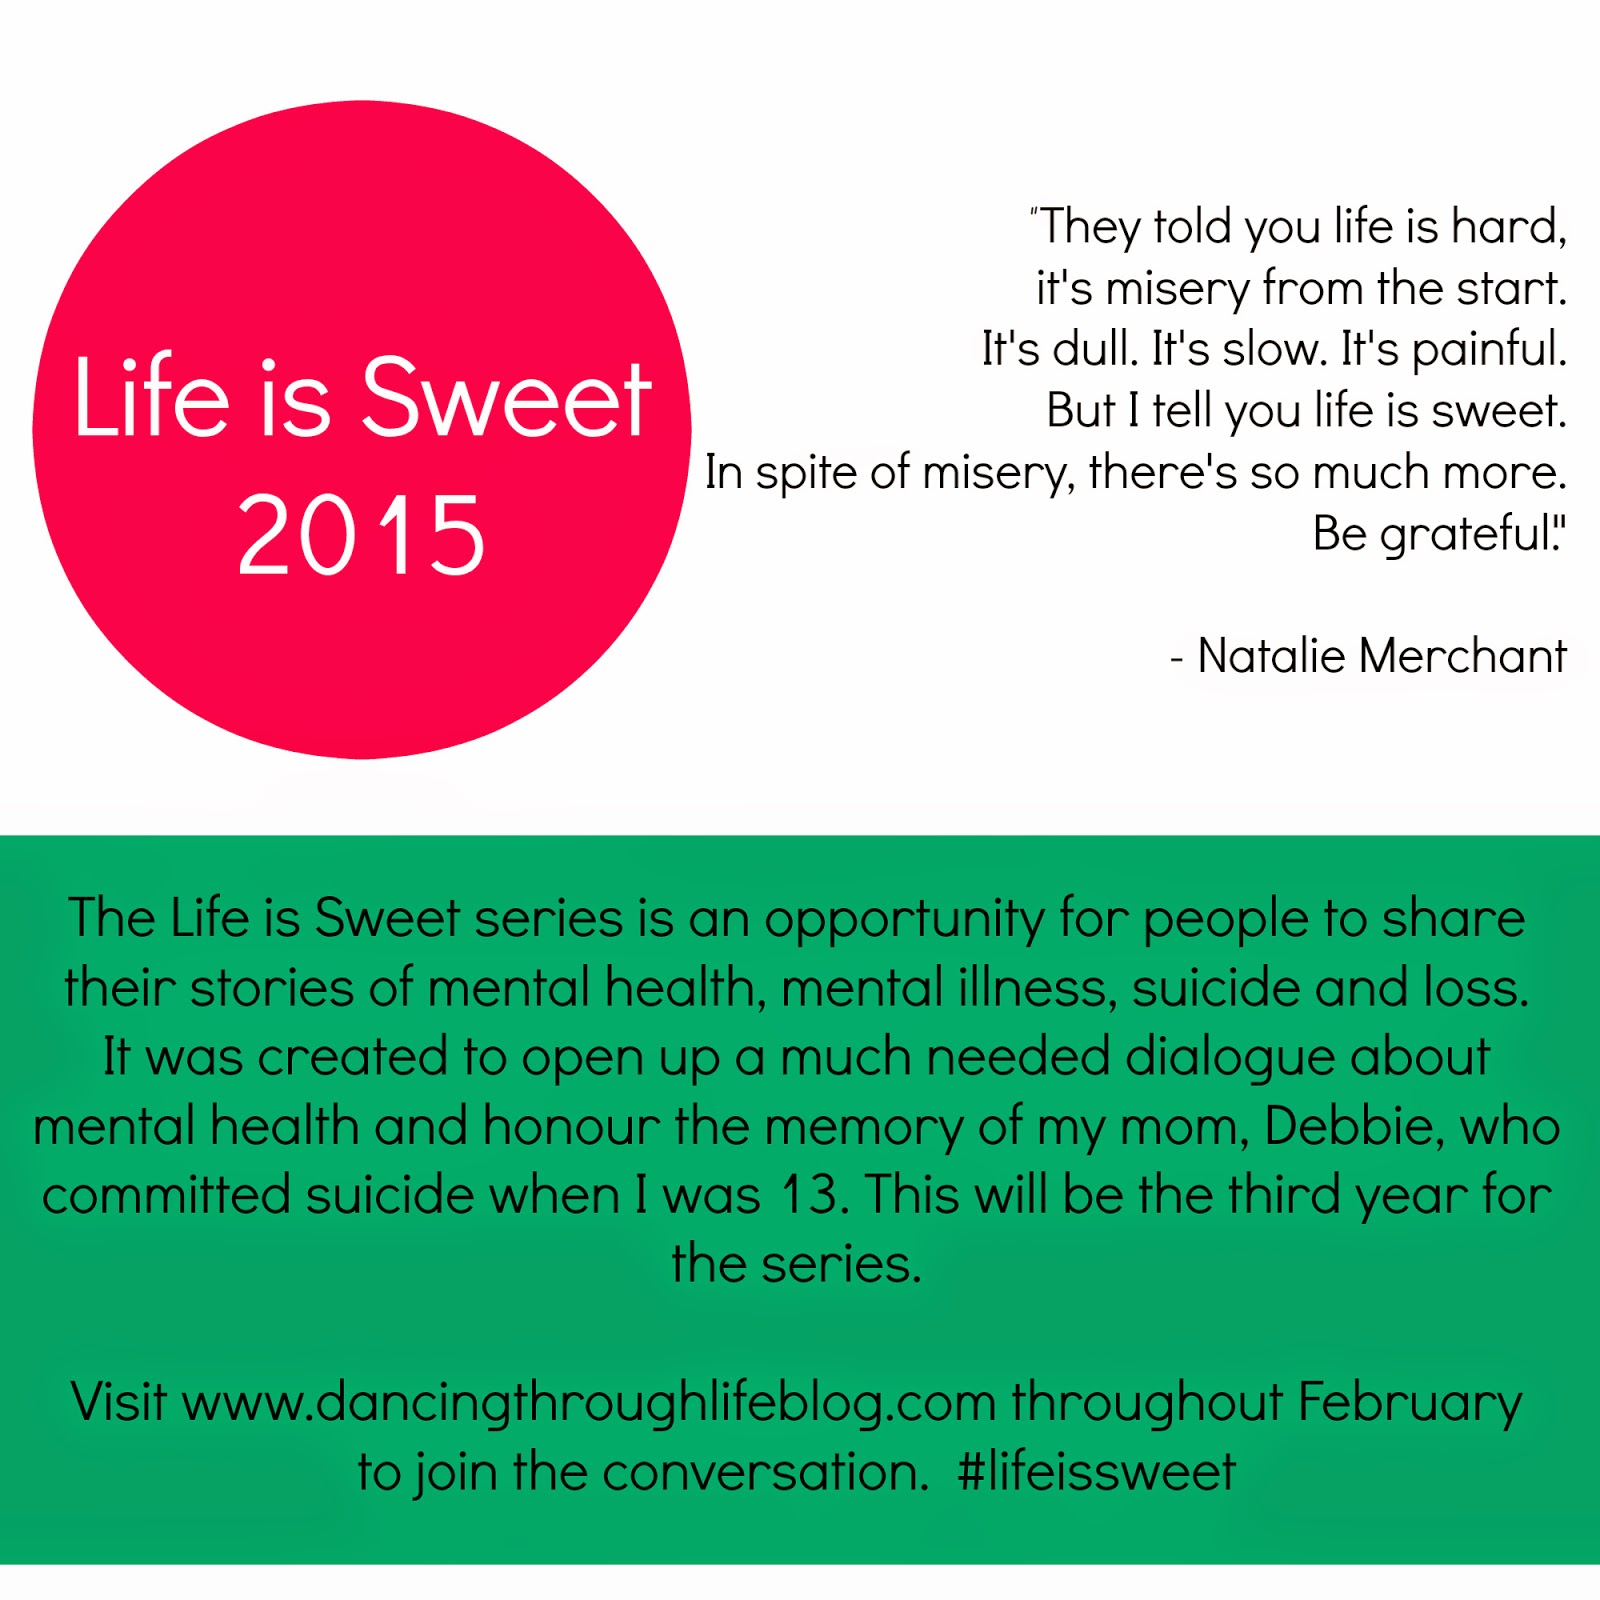 The Life is Sweet Series sharing stories of mental health, mental illness, suicide and loss